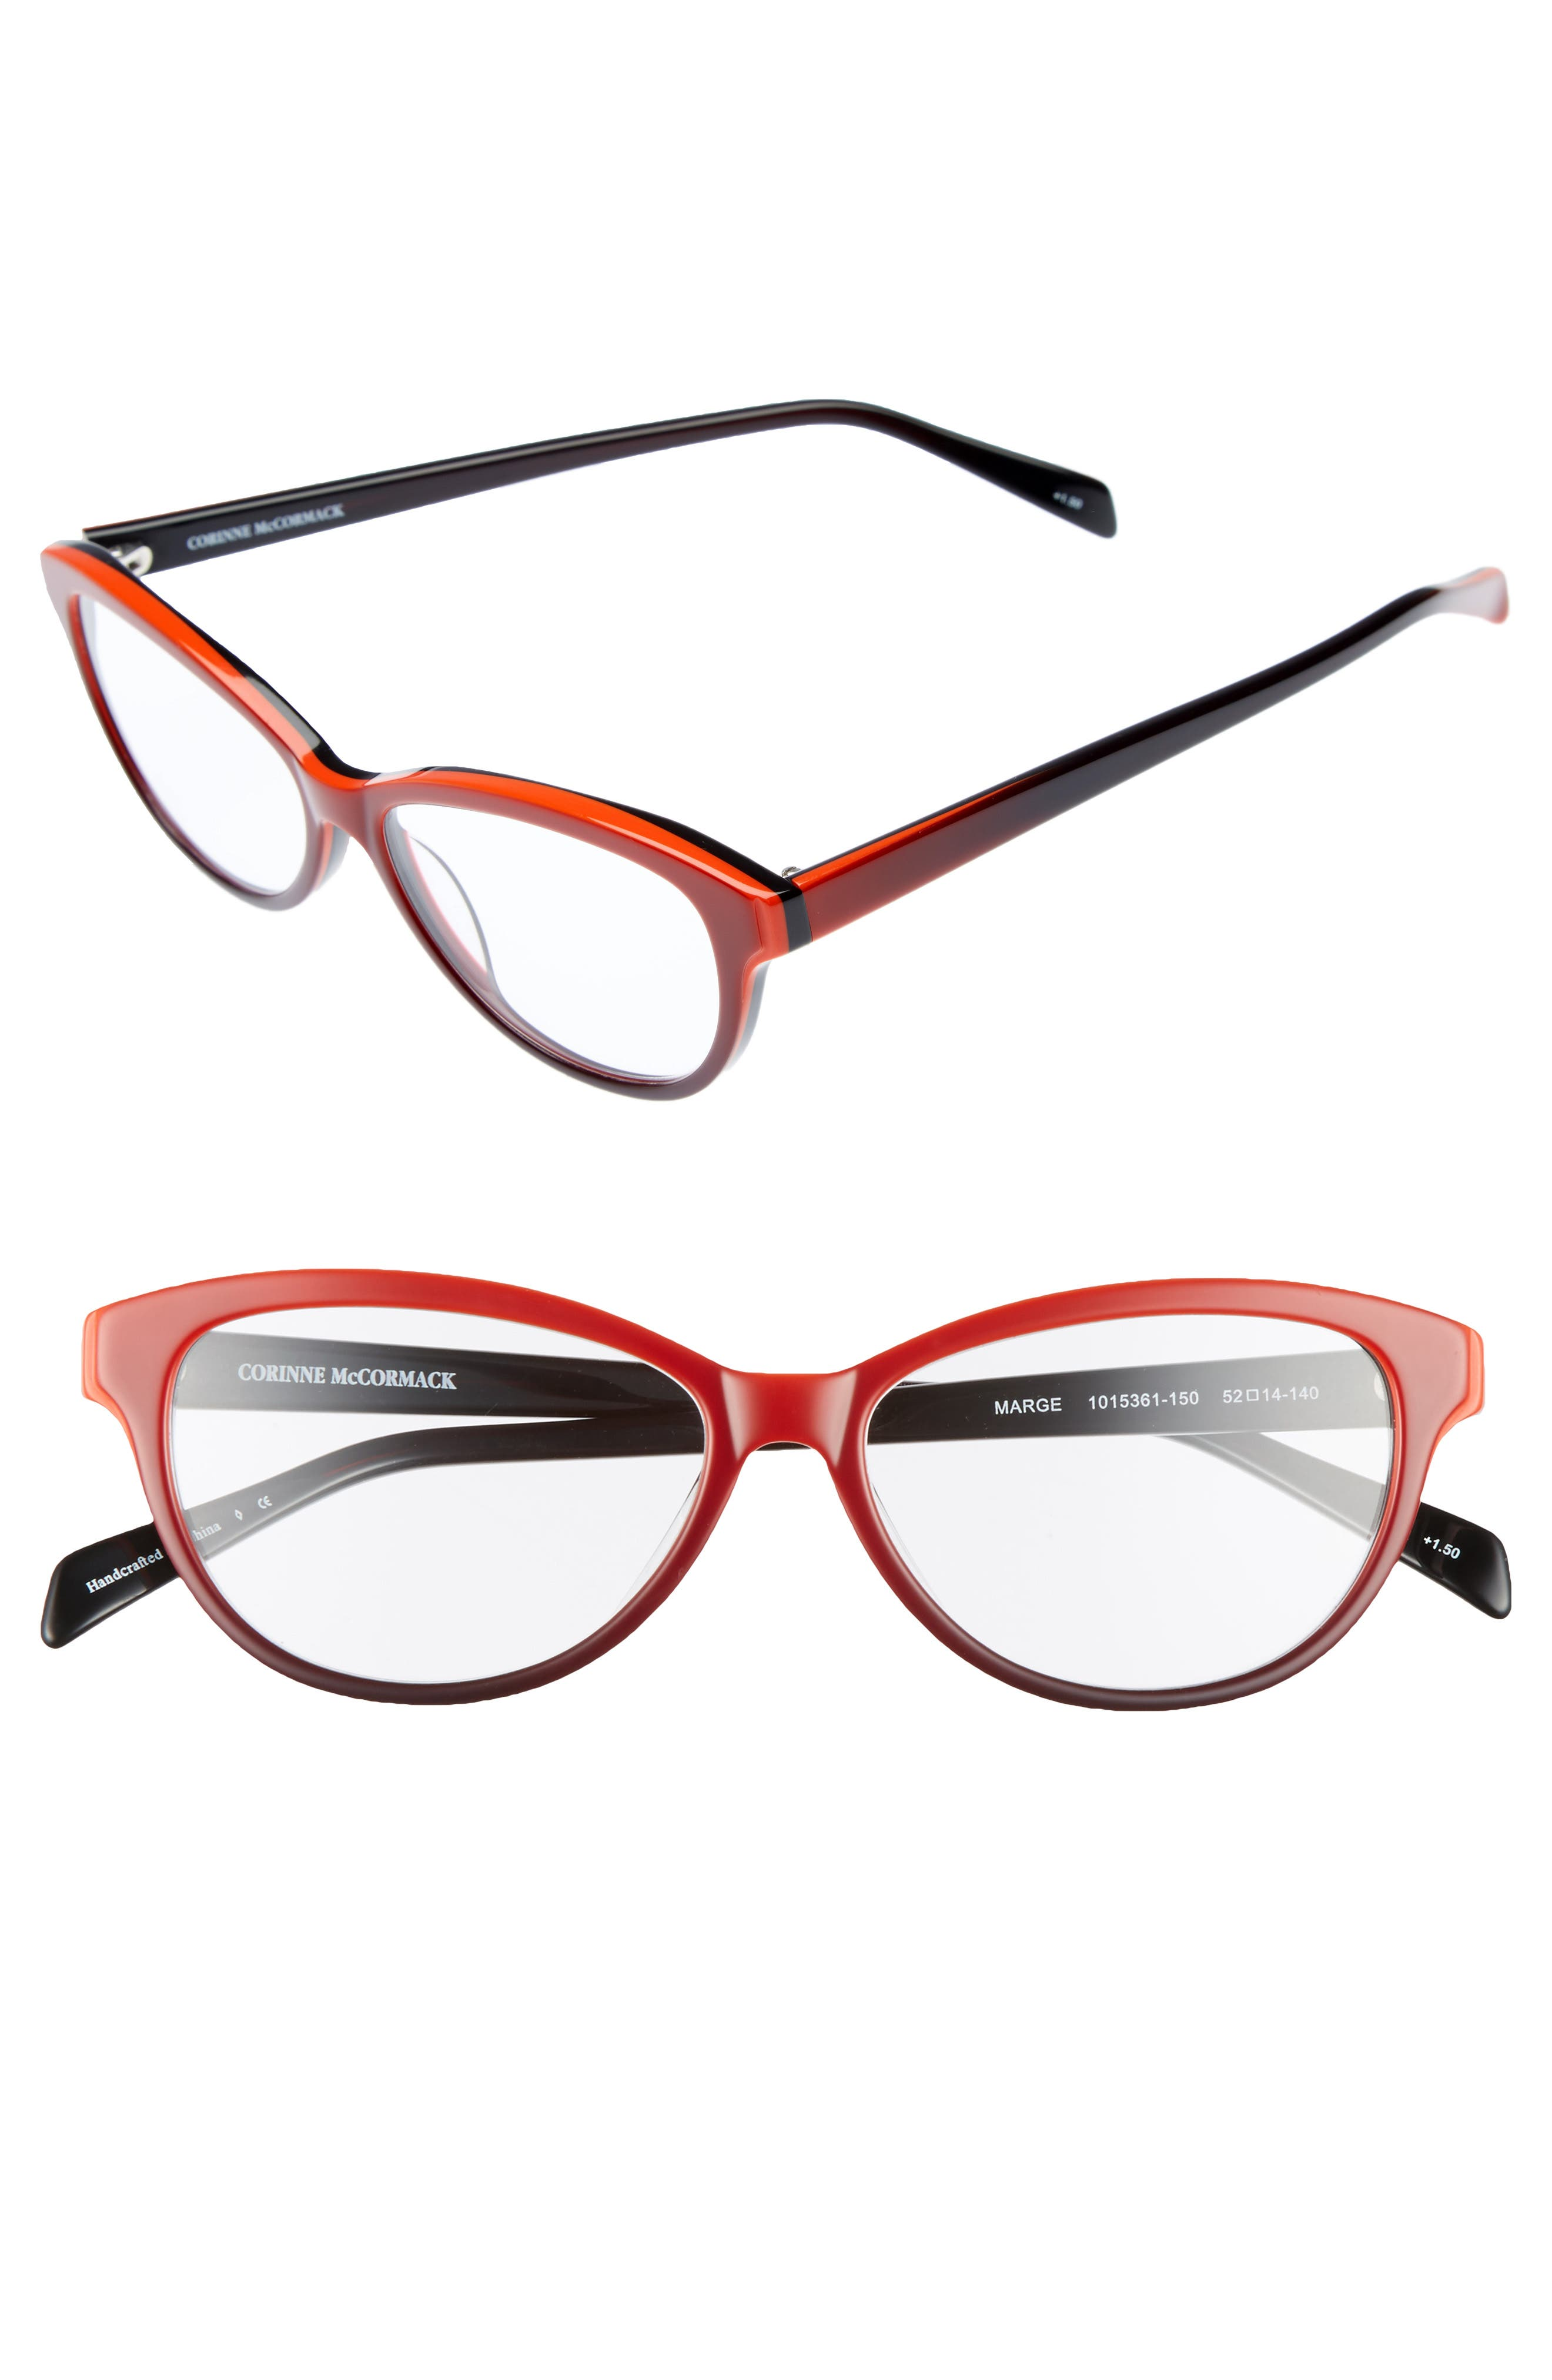 Corinne McCormack Marge 50mm Reading Glasses